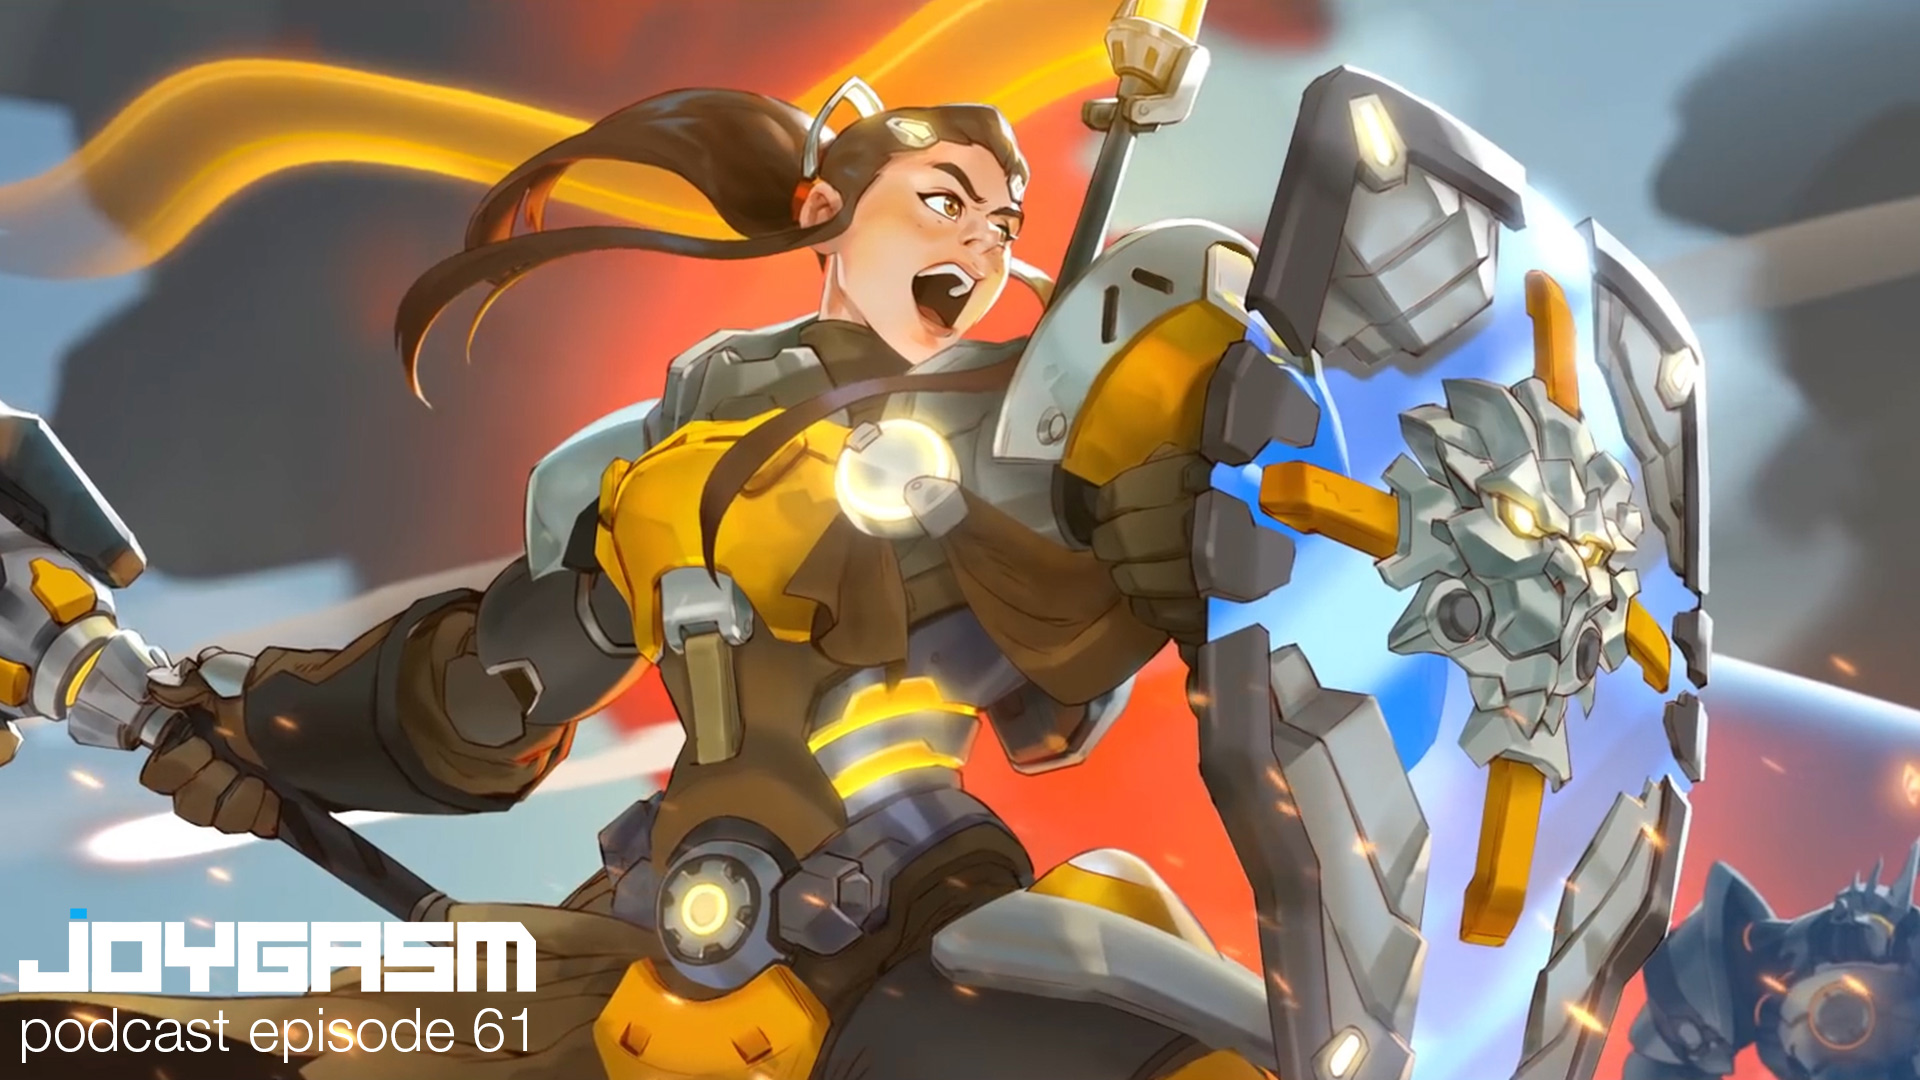 Joygasm Podcast Ep. 61: New Overwatch Character Brigitte Revealed, The Incredibles 2, Ralph Breaks The Internet, Apple iPhone Lineup & More!